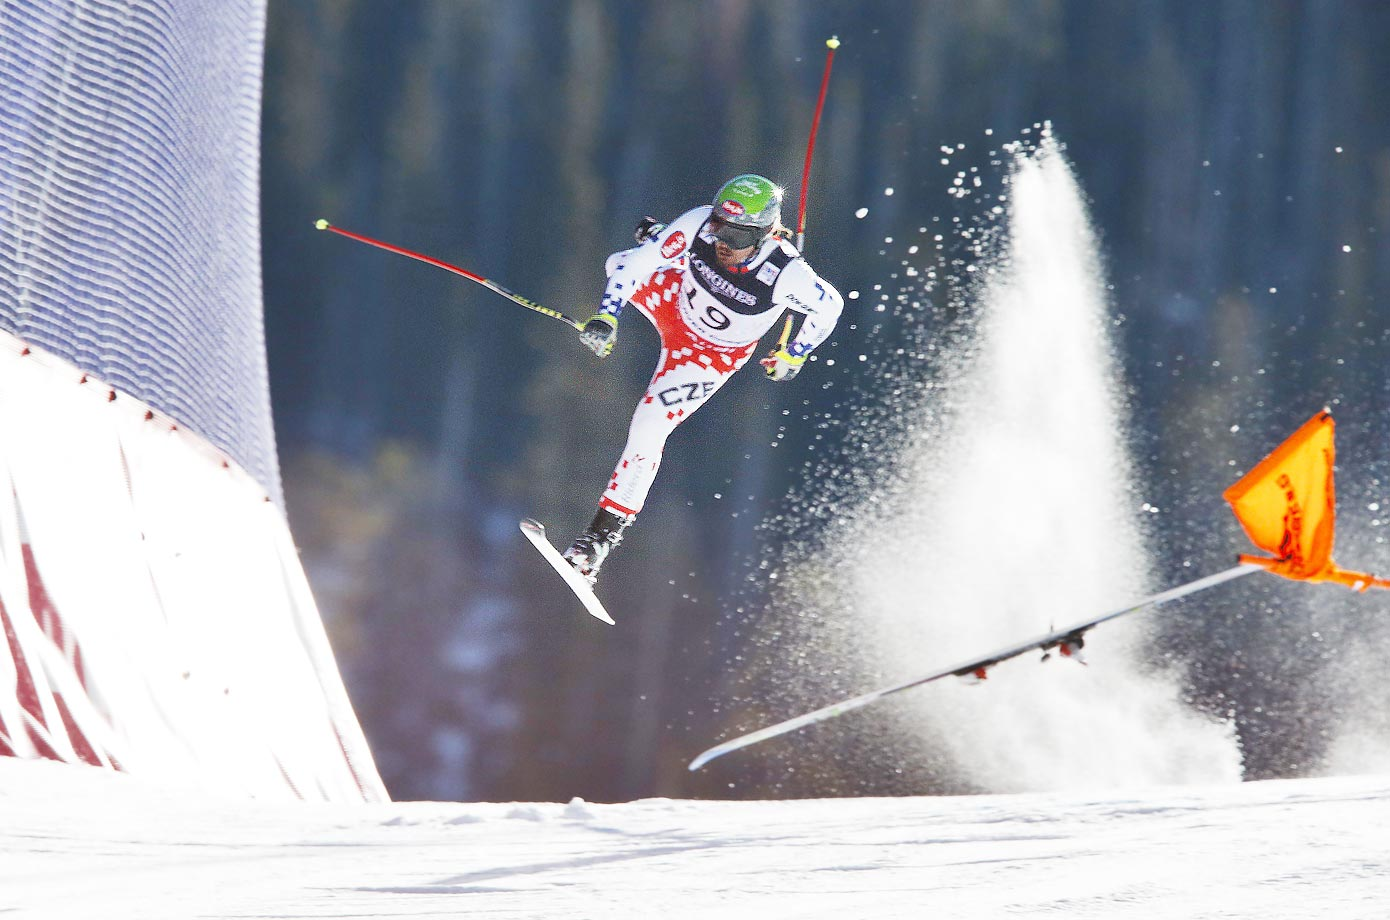 Czech Republic's Ondrej Bank crashes during the downhill portion of the Alpine combined at the world championships in Beaver Creek, Colo.